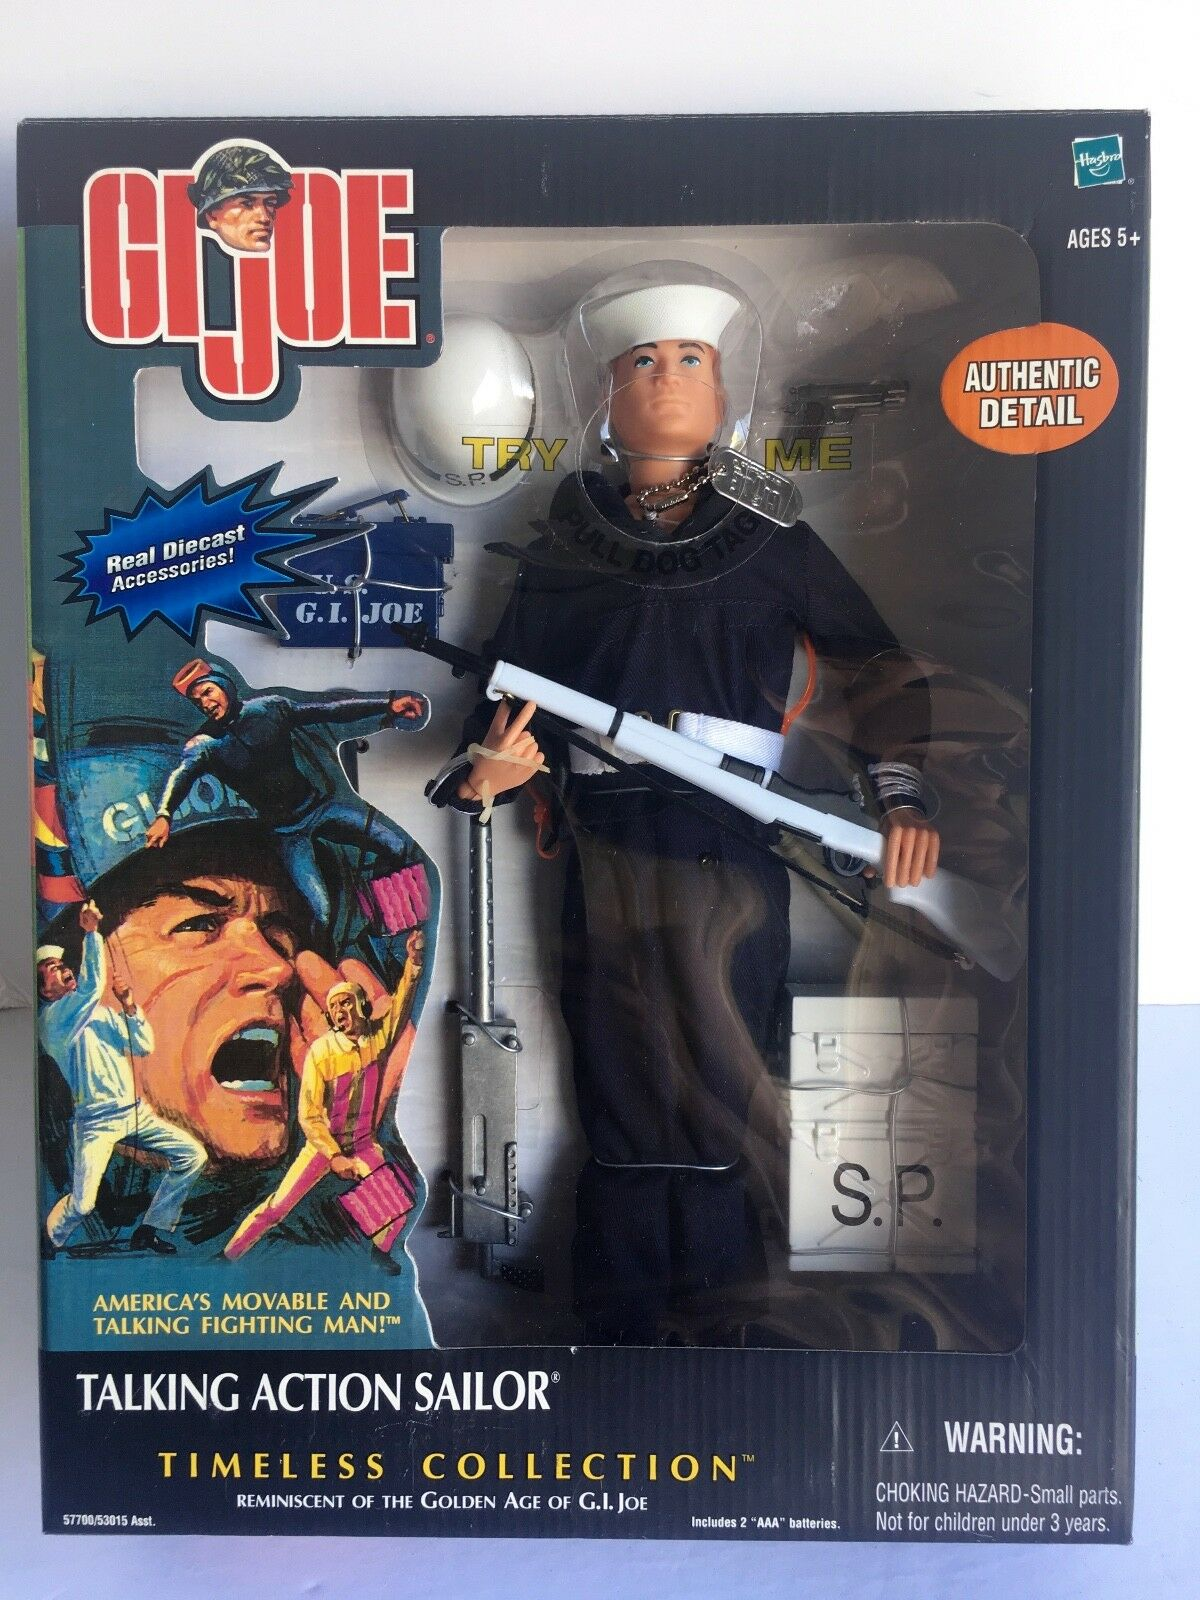 G. I. Joe TALKING ACTION SOLDIER Die Cast Accessories GJ-8